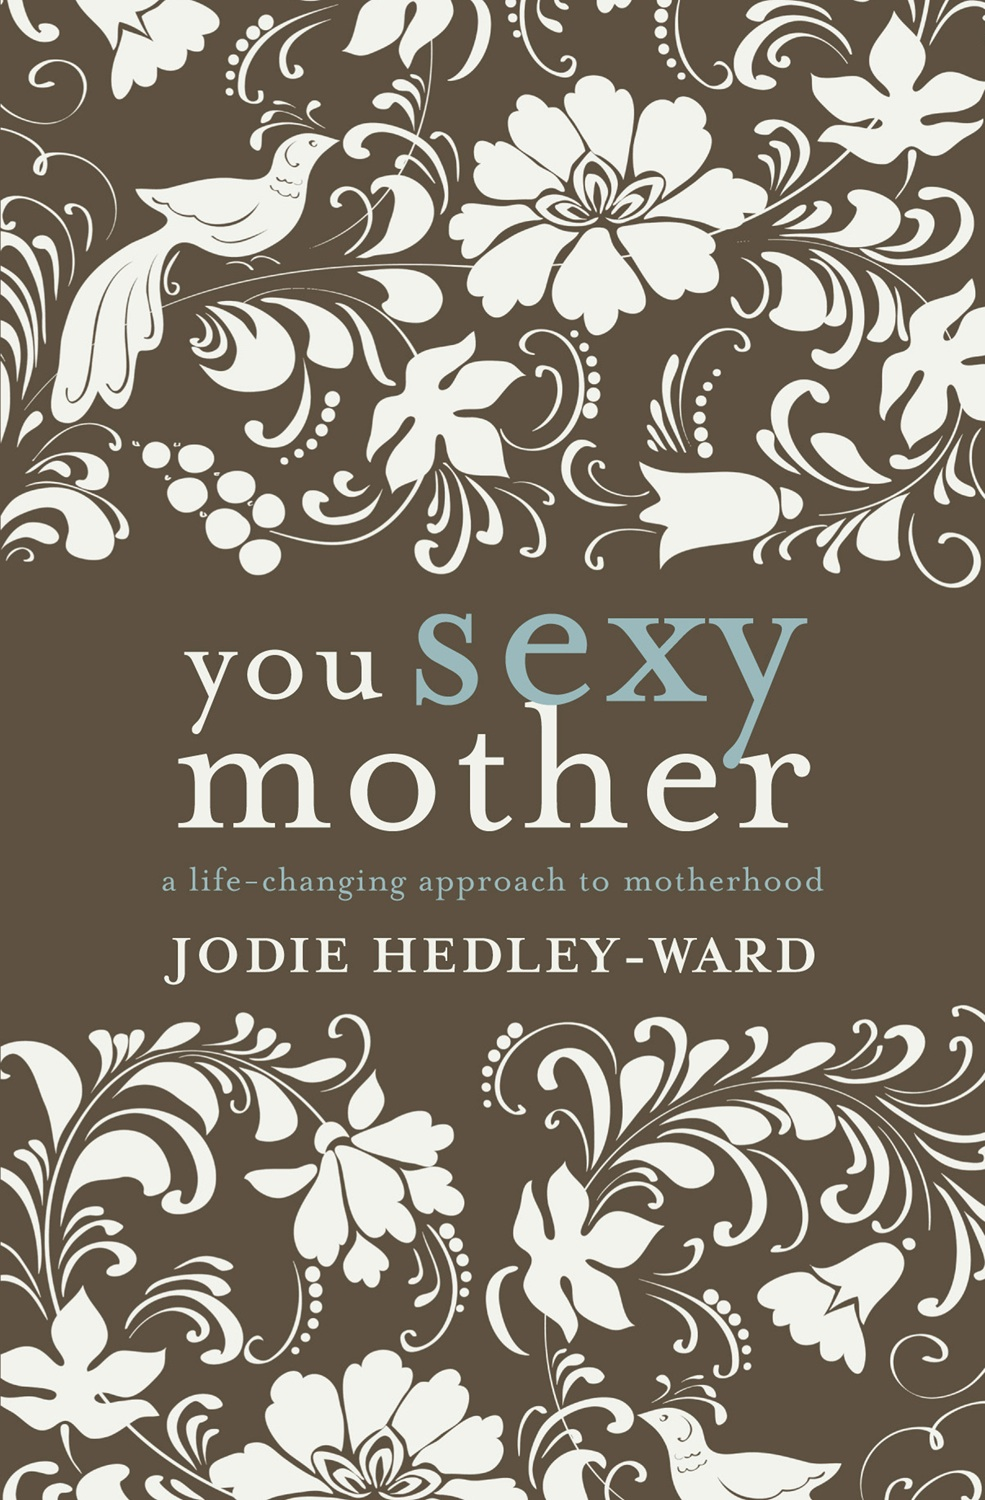 You Sexy Mother: A life-changing approach to motherhood